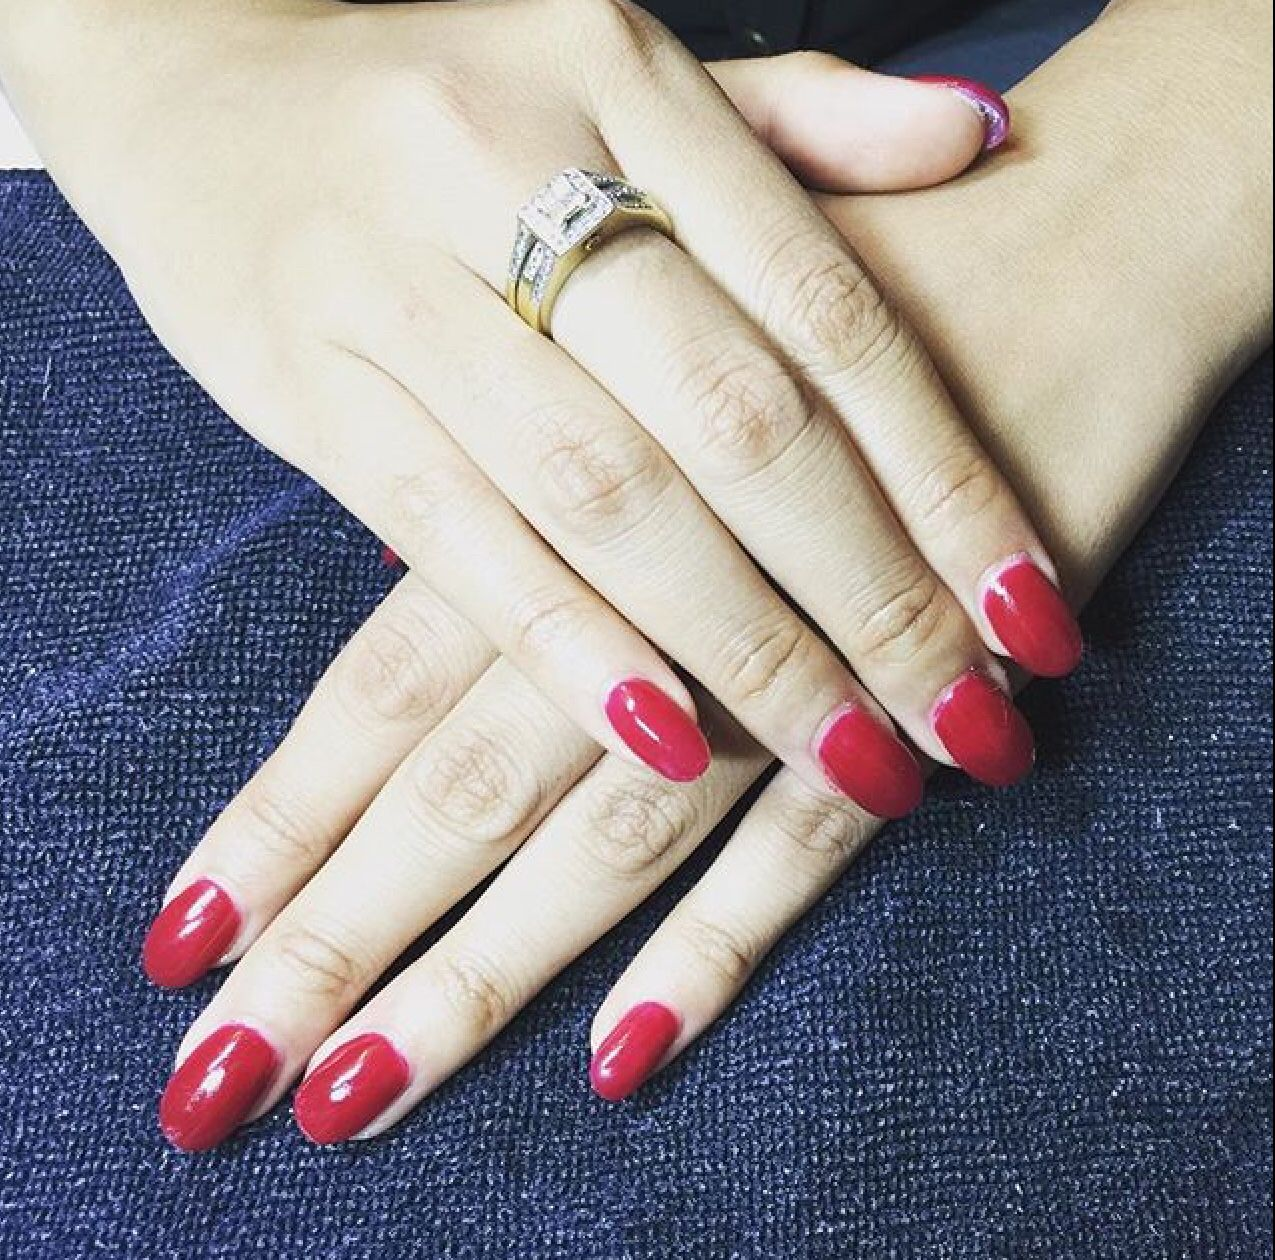 """""""CHICK FLICK CHERRY"""" for this gorgeous lady ✨ full set acrylics with OPI Gel Polish #jayelsbeauty #acrylicnails #perthnails"""